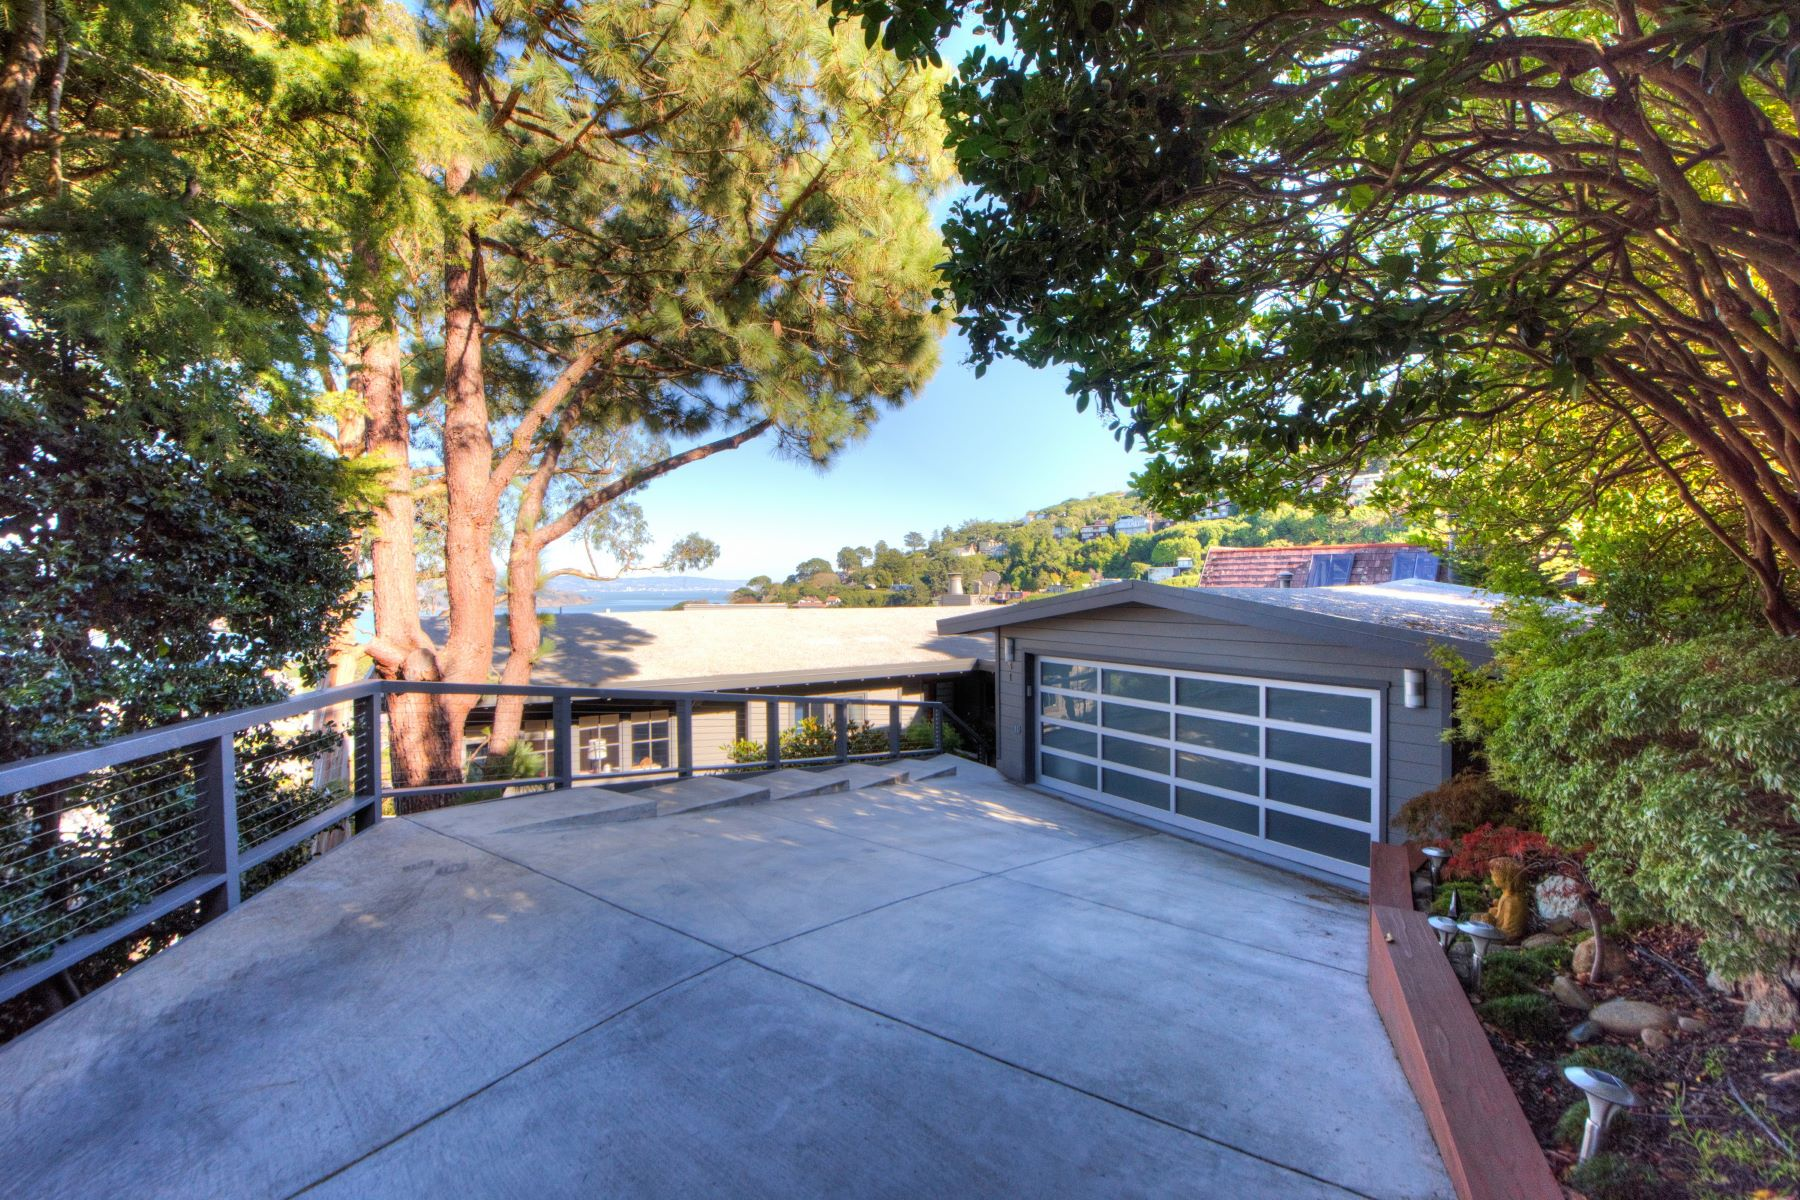 Single Family Home for Sale at Contemporary with Stunning Bay Views! 51 George Lane Sausalito, California 94965 United States